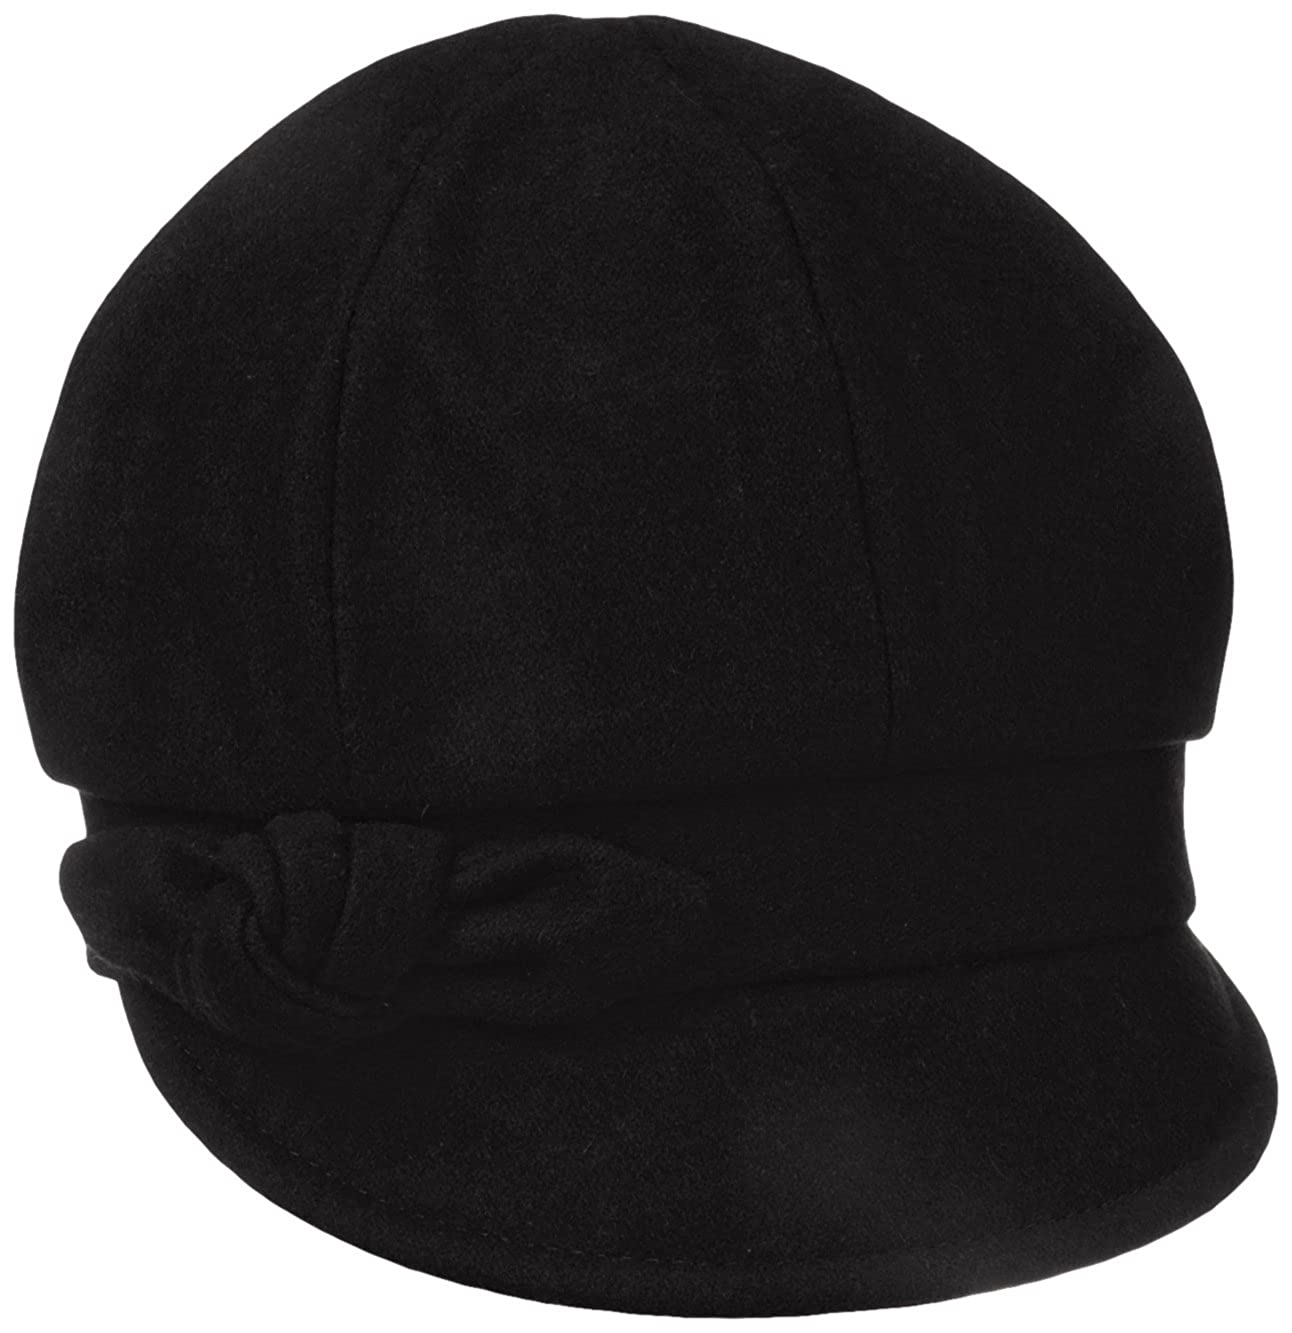 Betmar Women's Adele Plaid Cap with Bow Black One Size Betmar Womens Accessories B011H